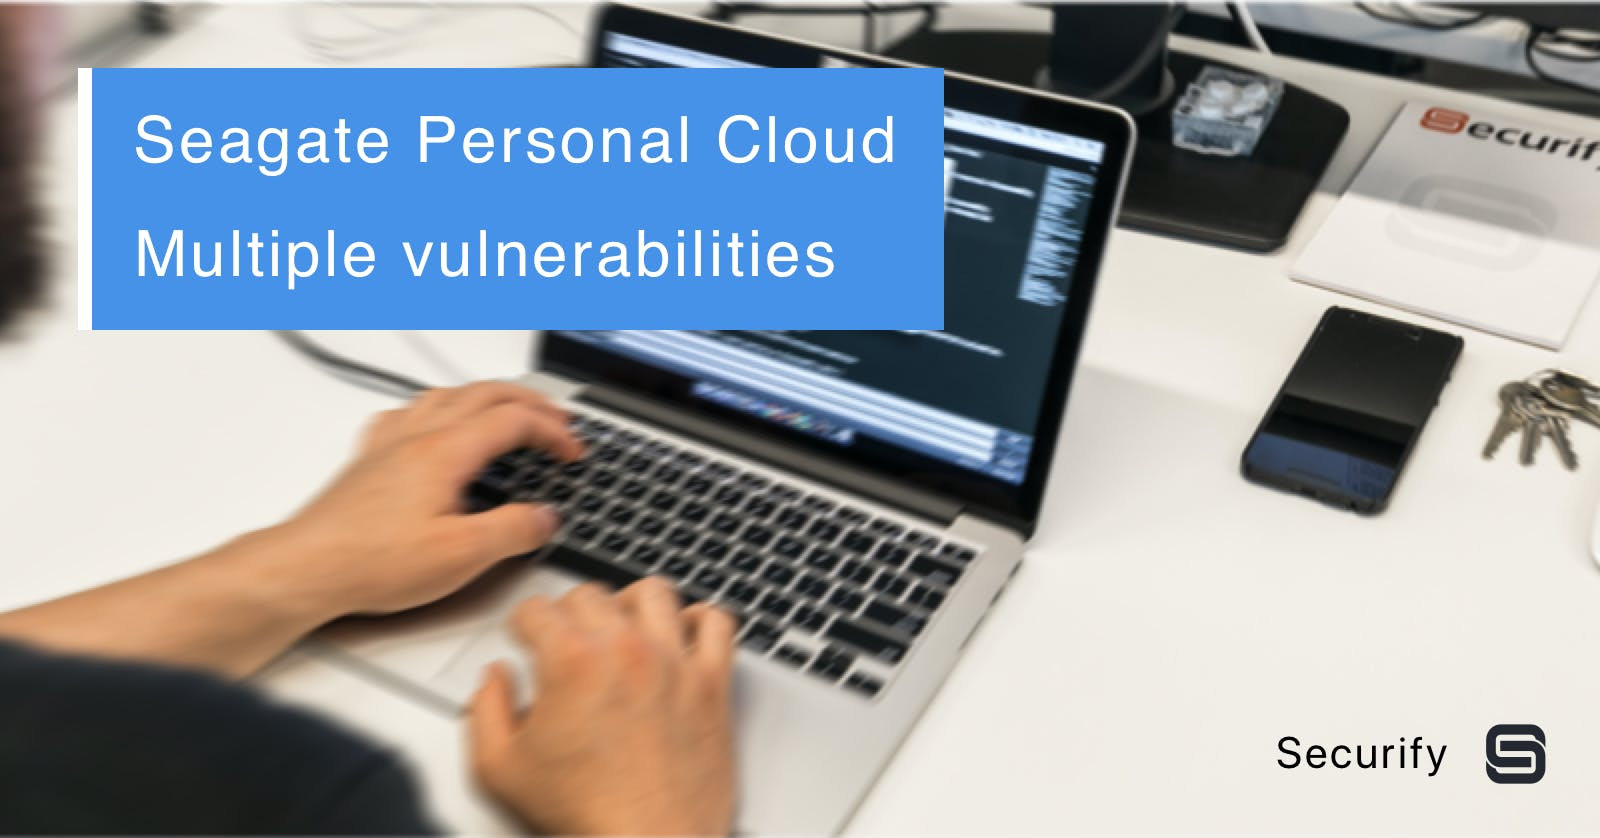 Seagate Personal Cloud allows moving of arbitrary files